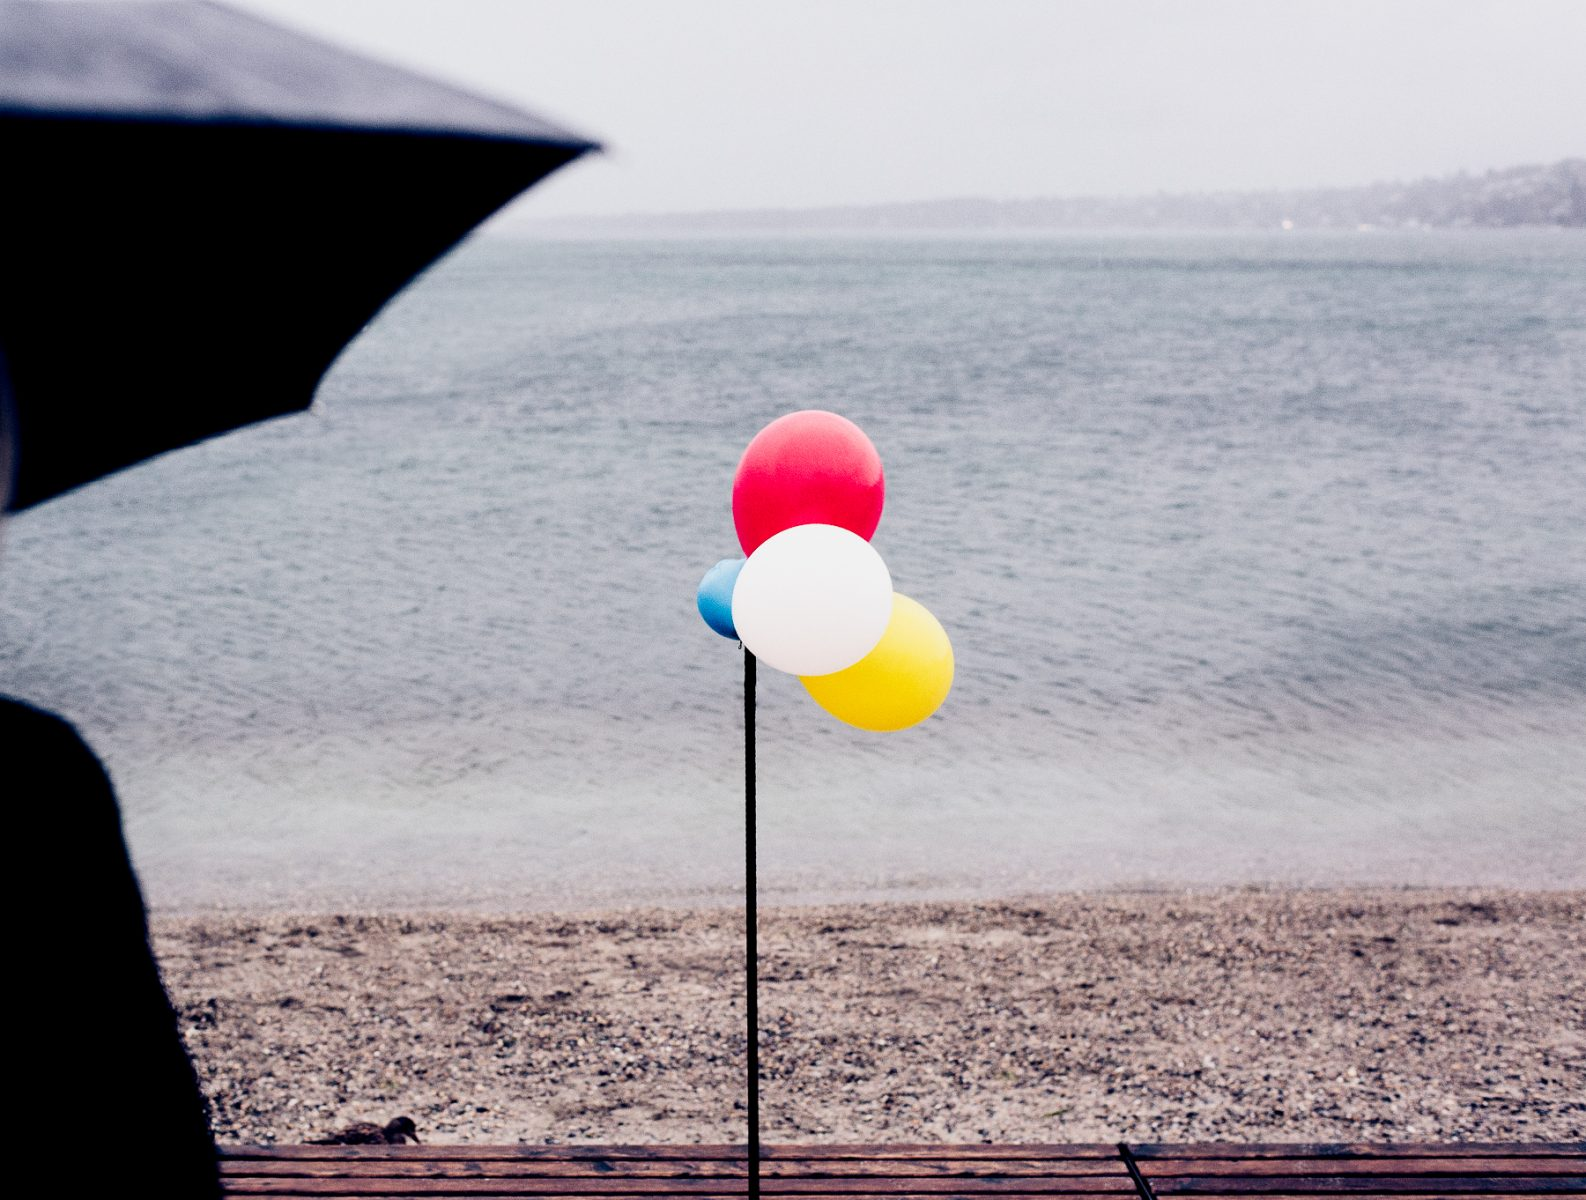 Ballons and umbrella